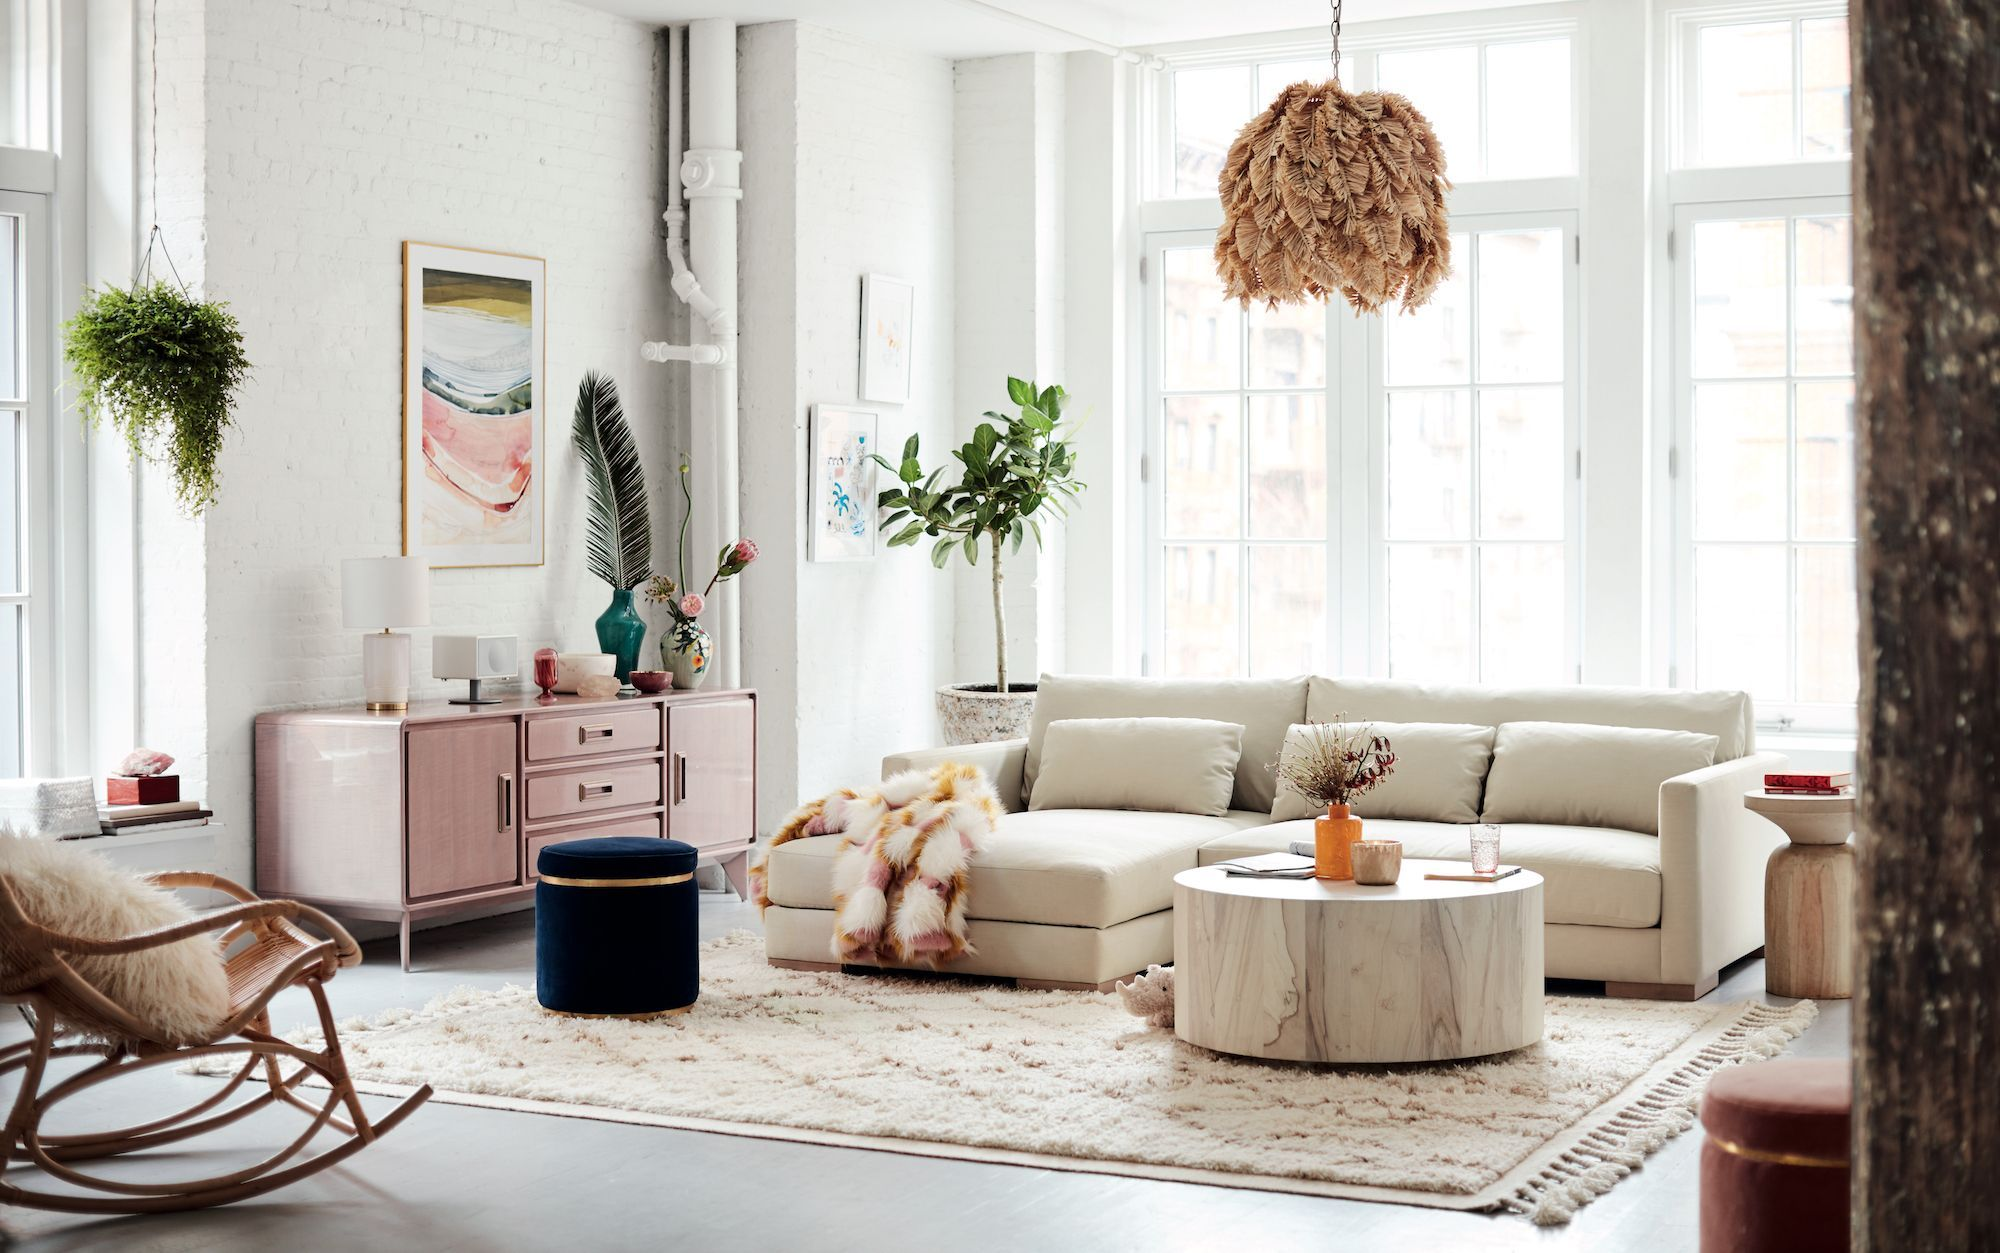 Anthropologie Released 1 400 New Fall Home Items Here Are The Essentials Anthropologie Living Room Home Collections Autumn Home Download anthropologie living room